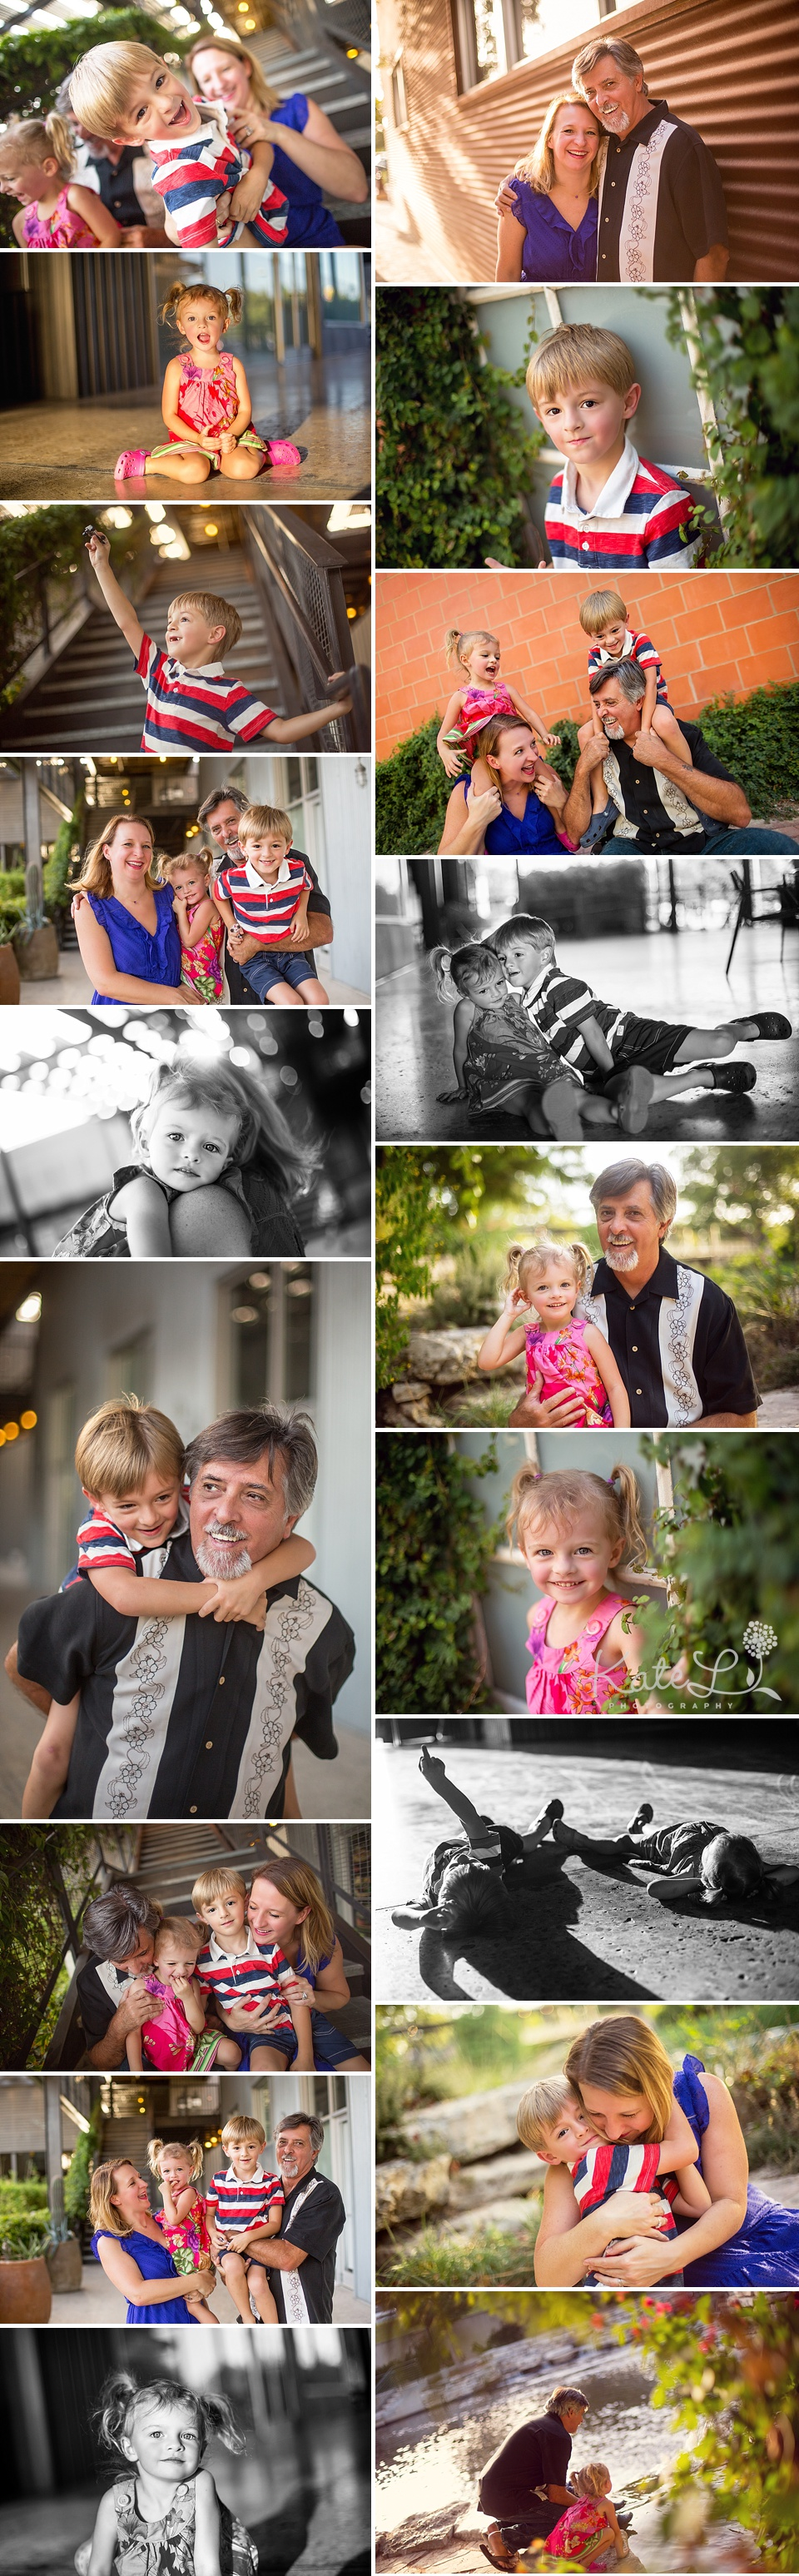 Colorful family photos in Boston!